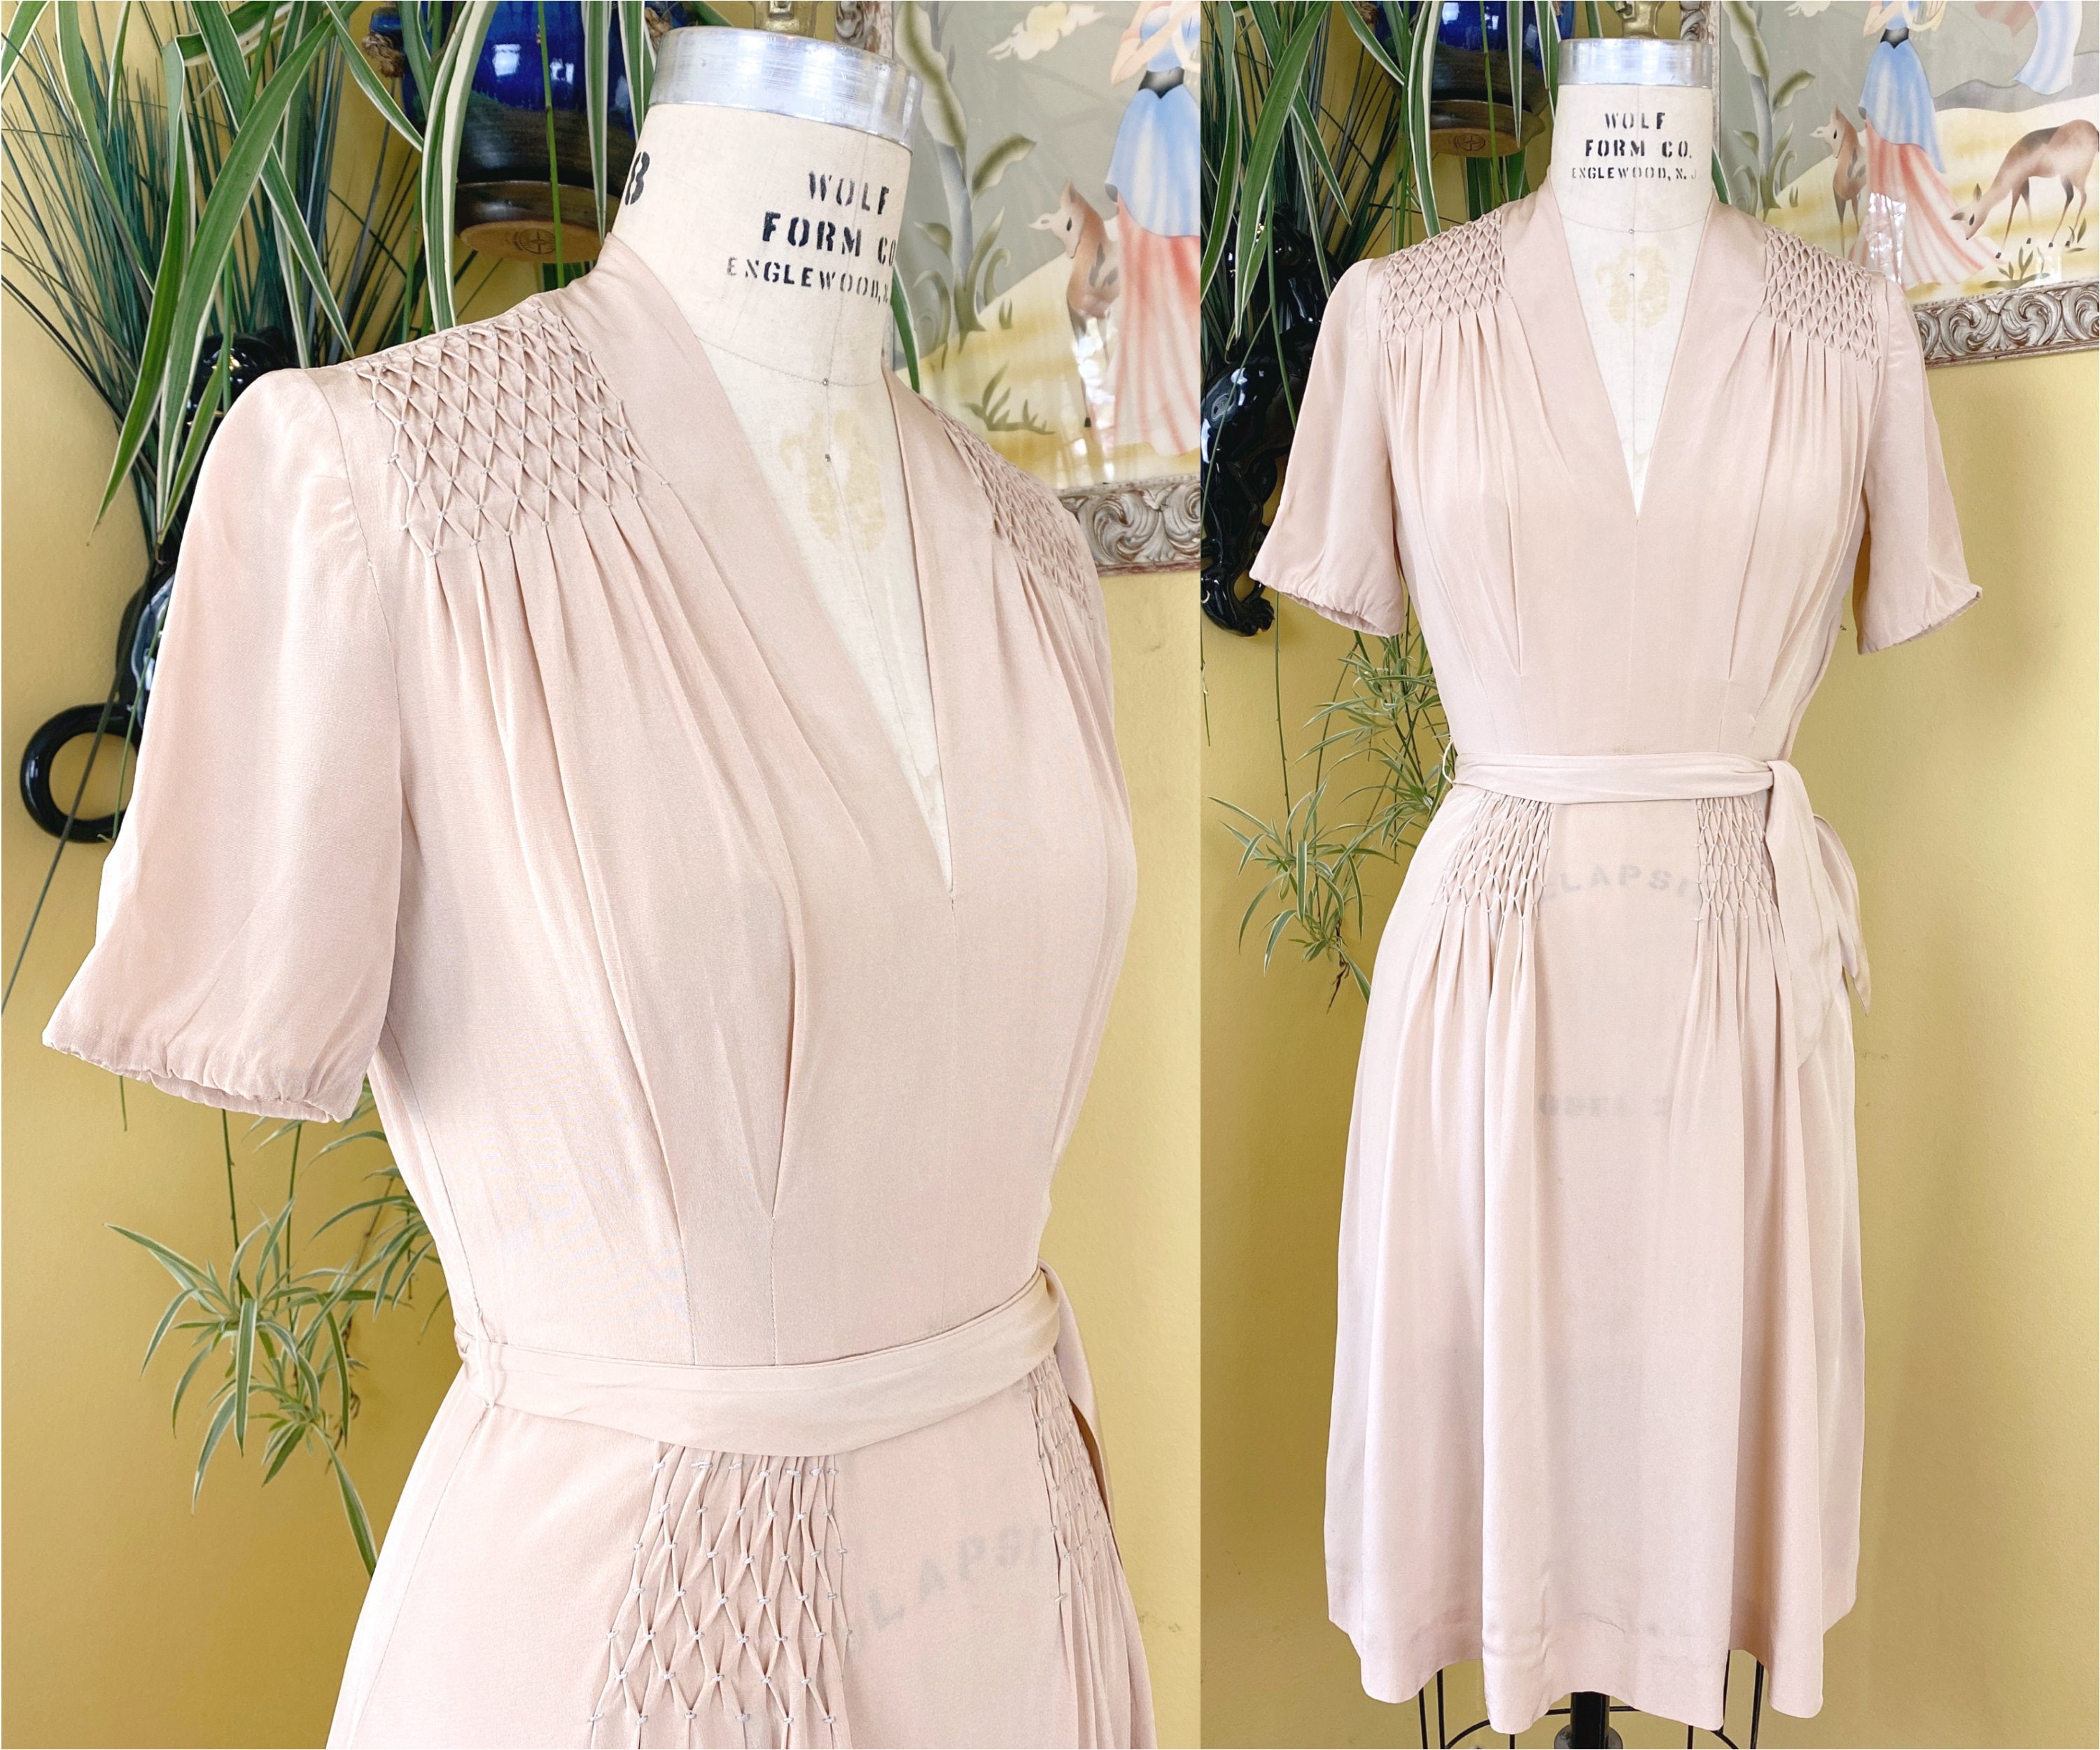 1940s Jewelry Styles and History Vintage Early 1940S Dress  Pale Peachy Pink Rayon 40S Intricate Smocked Panels  Matching Sash Belt $20.00 AT vintagedancer.com